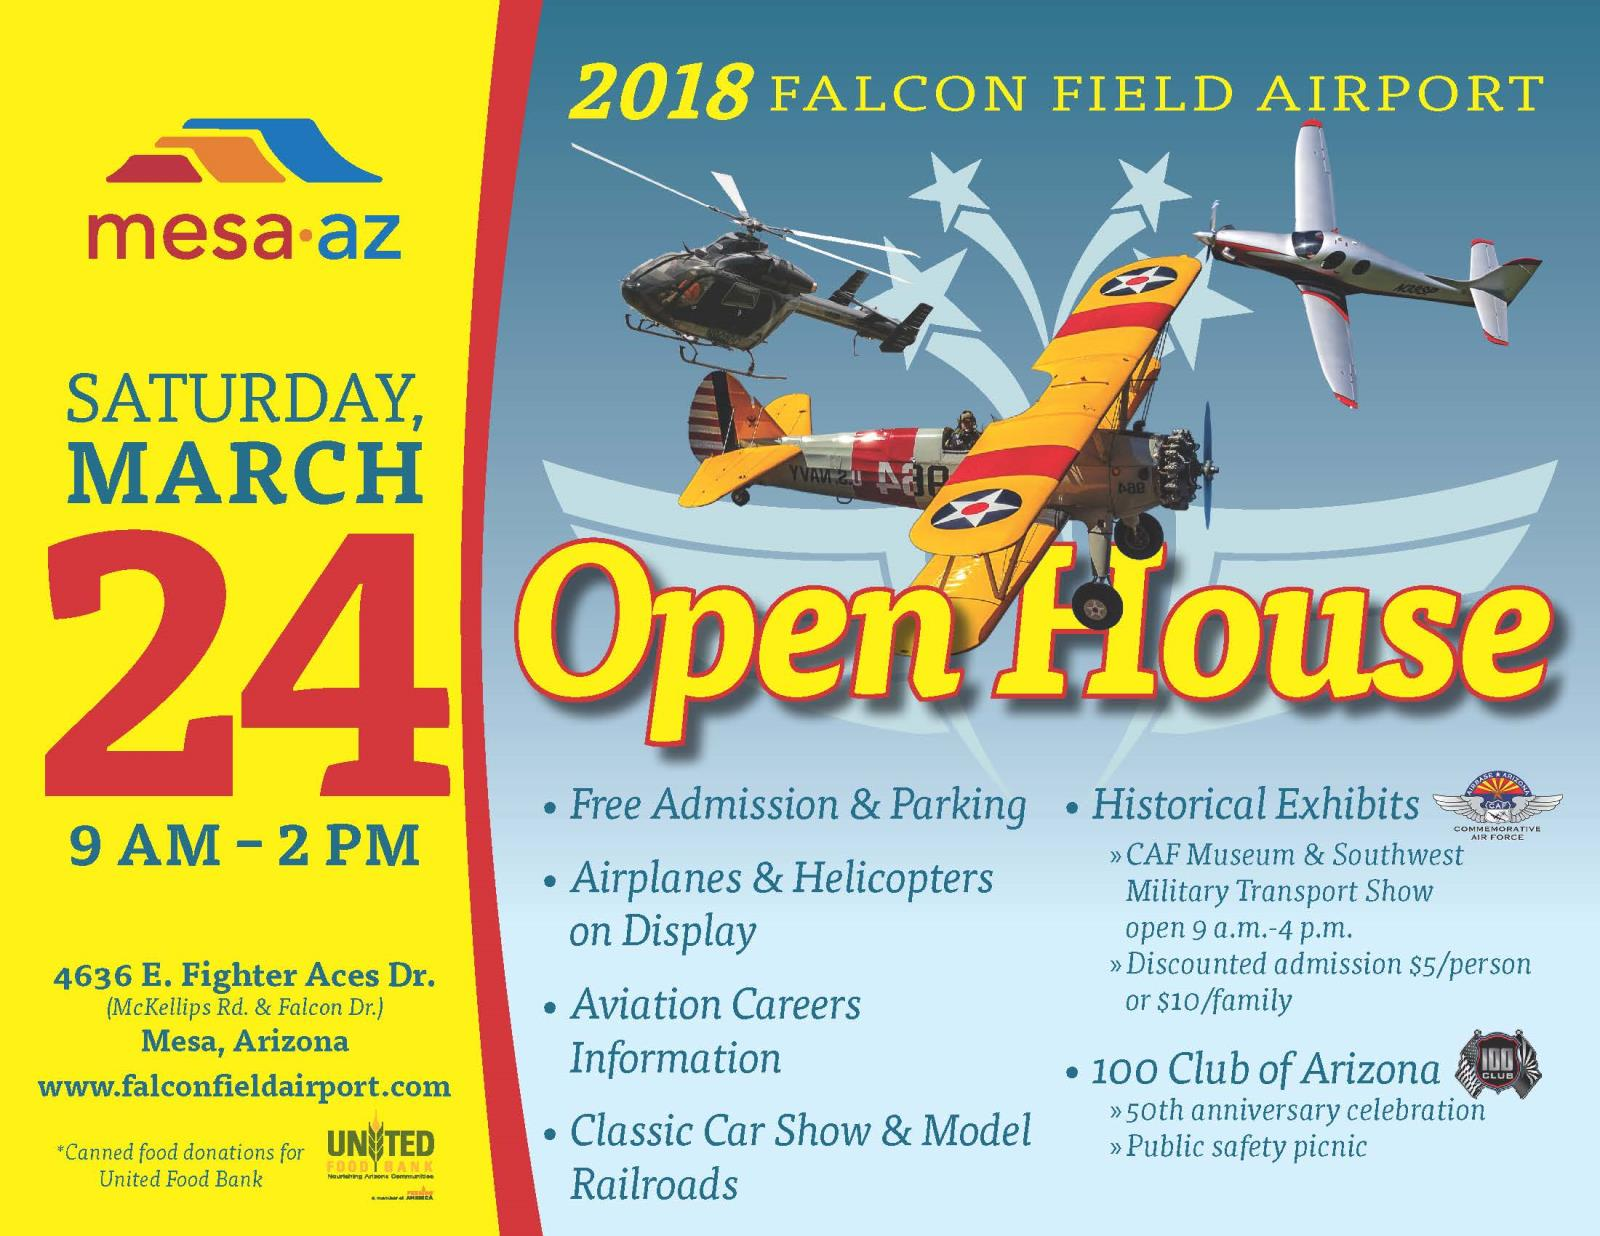 Falcon Field Open House Flyer, Open House, Airport Open House